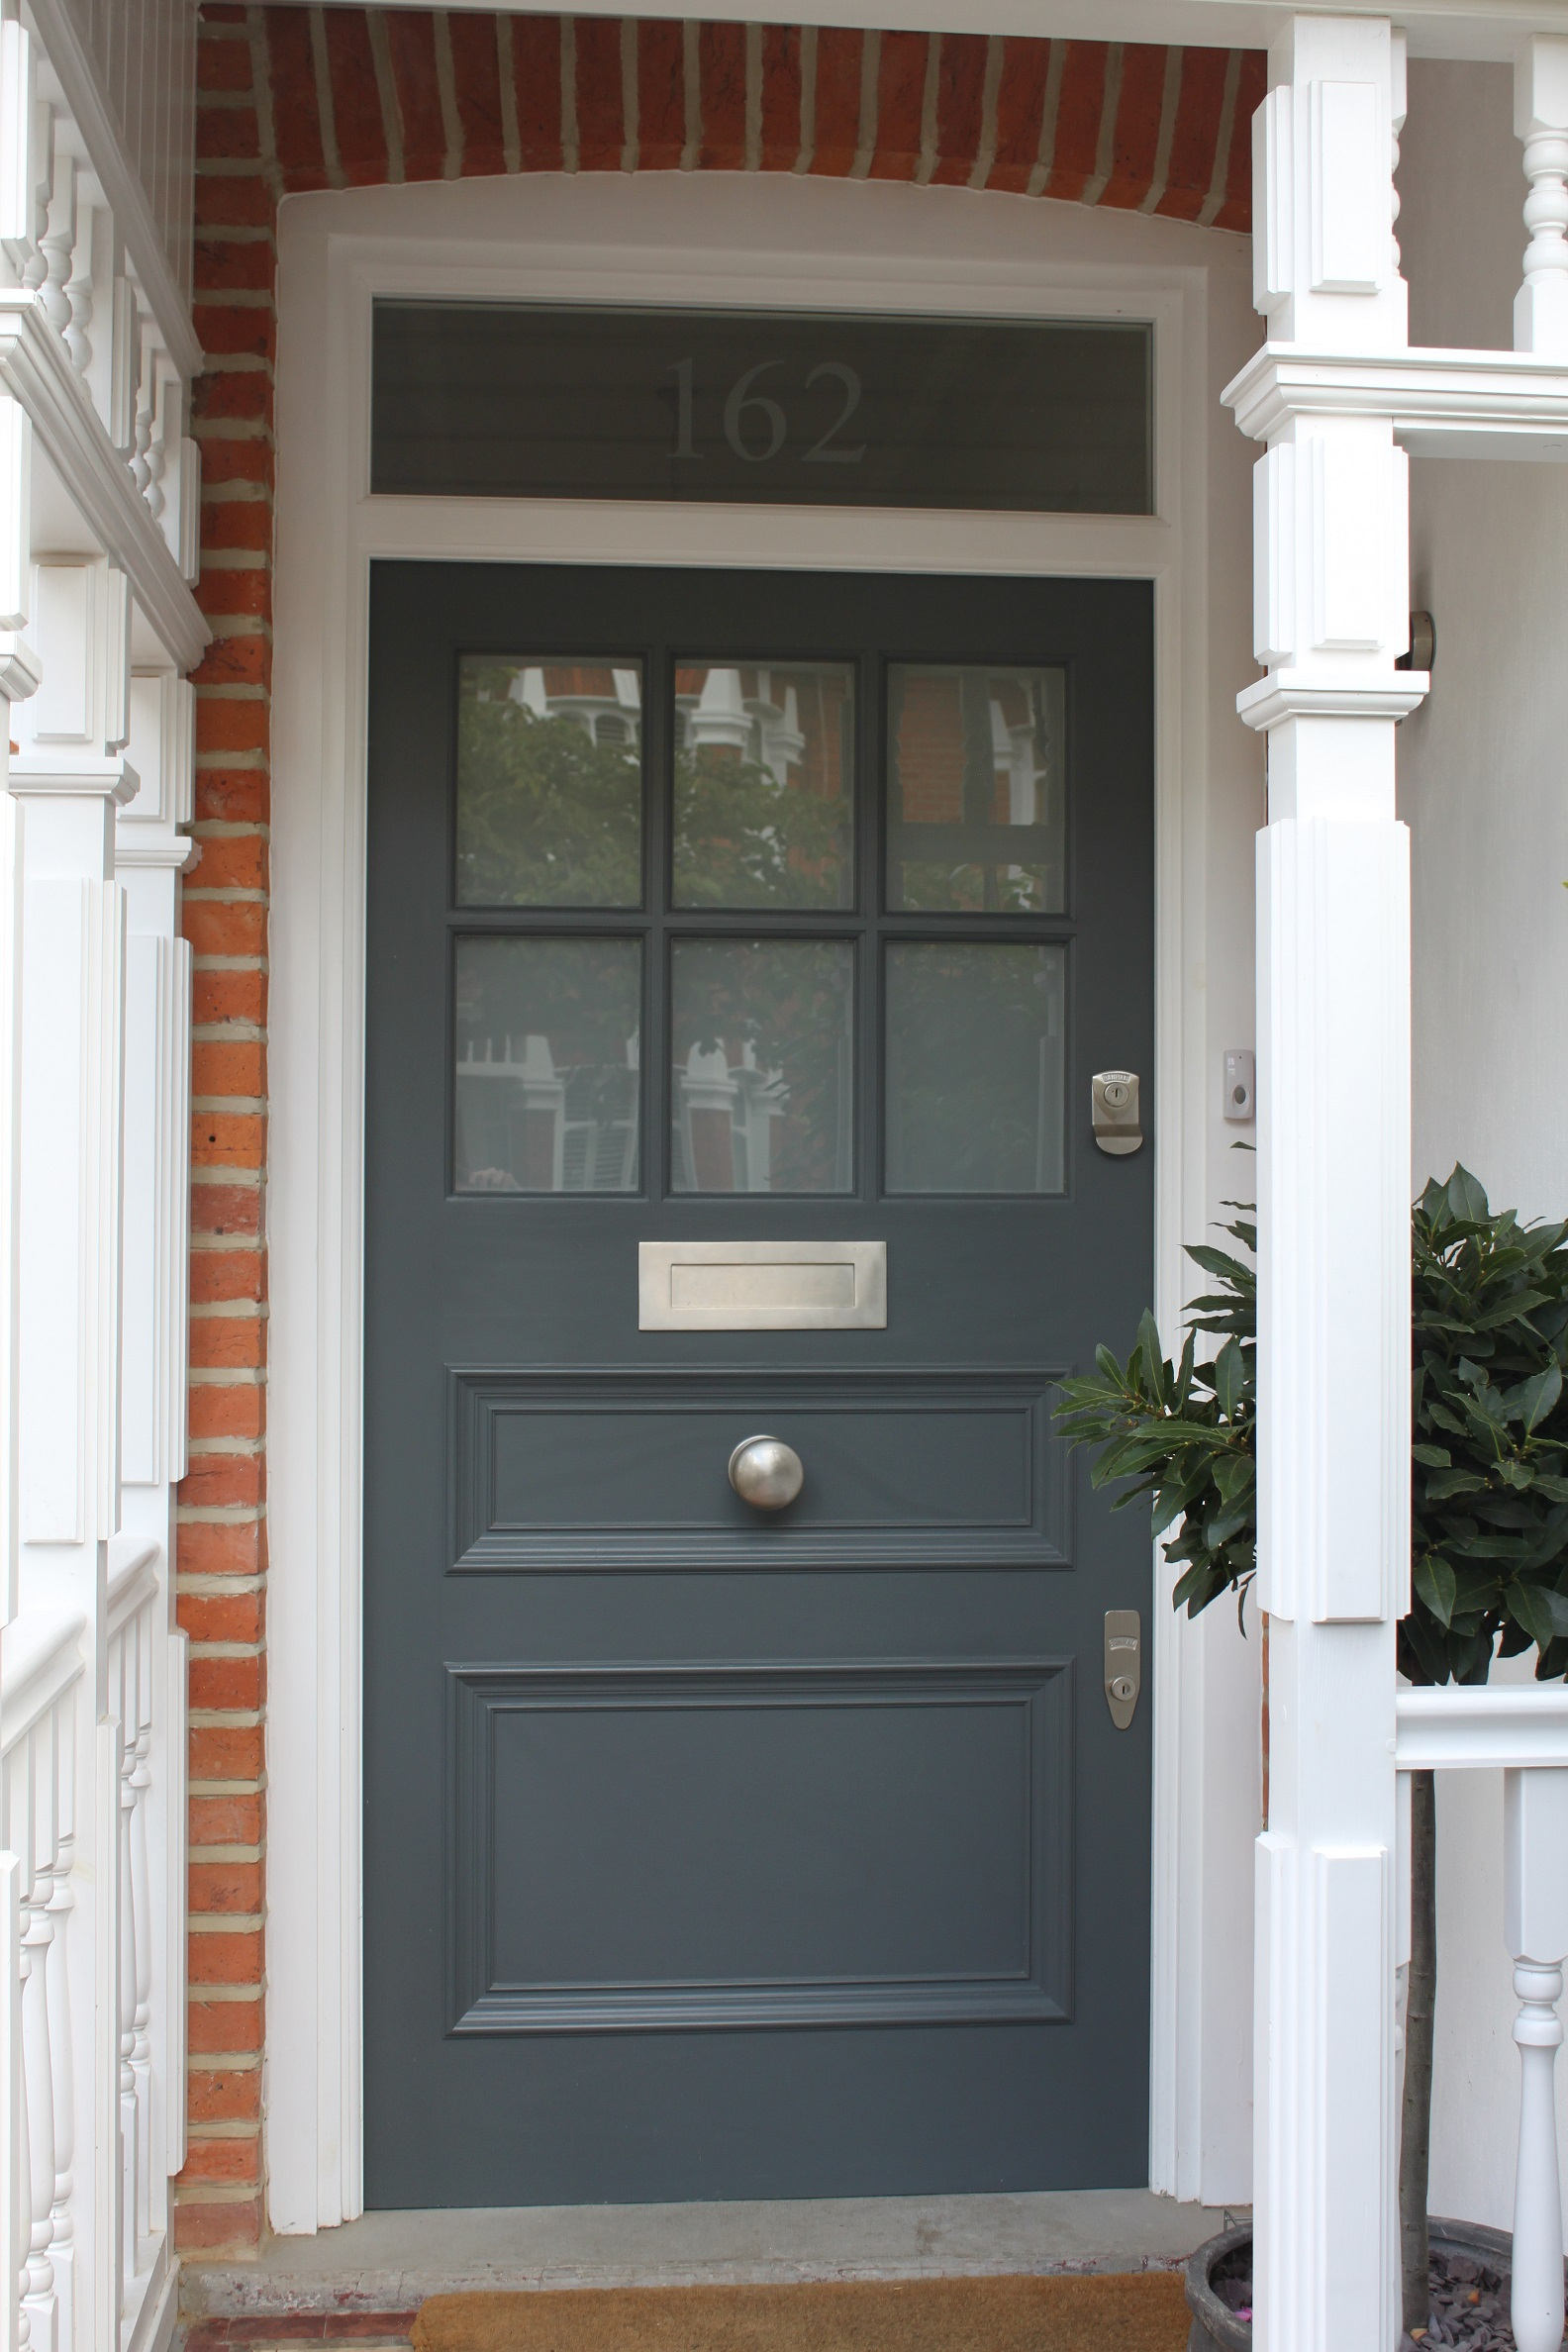 1930s Front Door In West London With Plain Sandblasted Glass